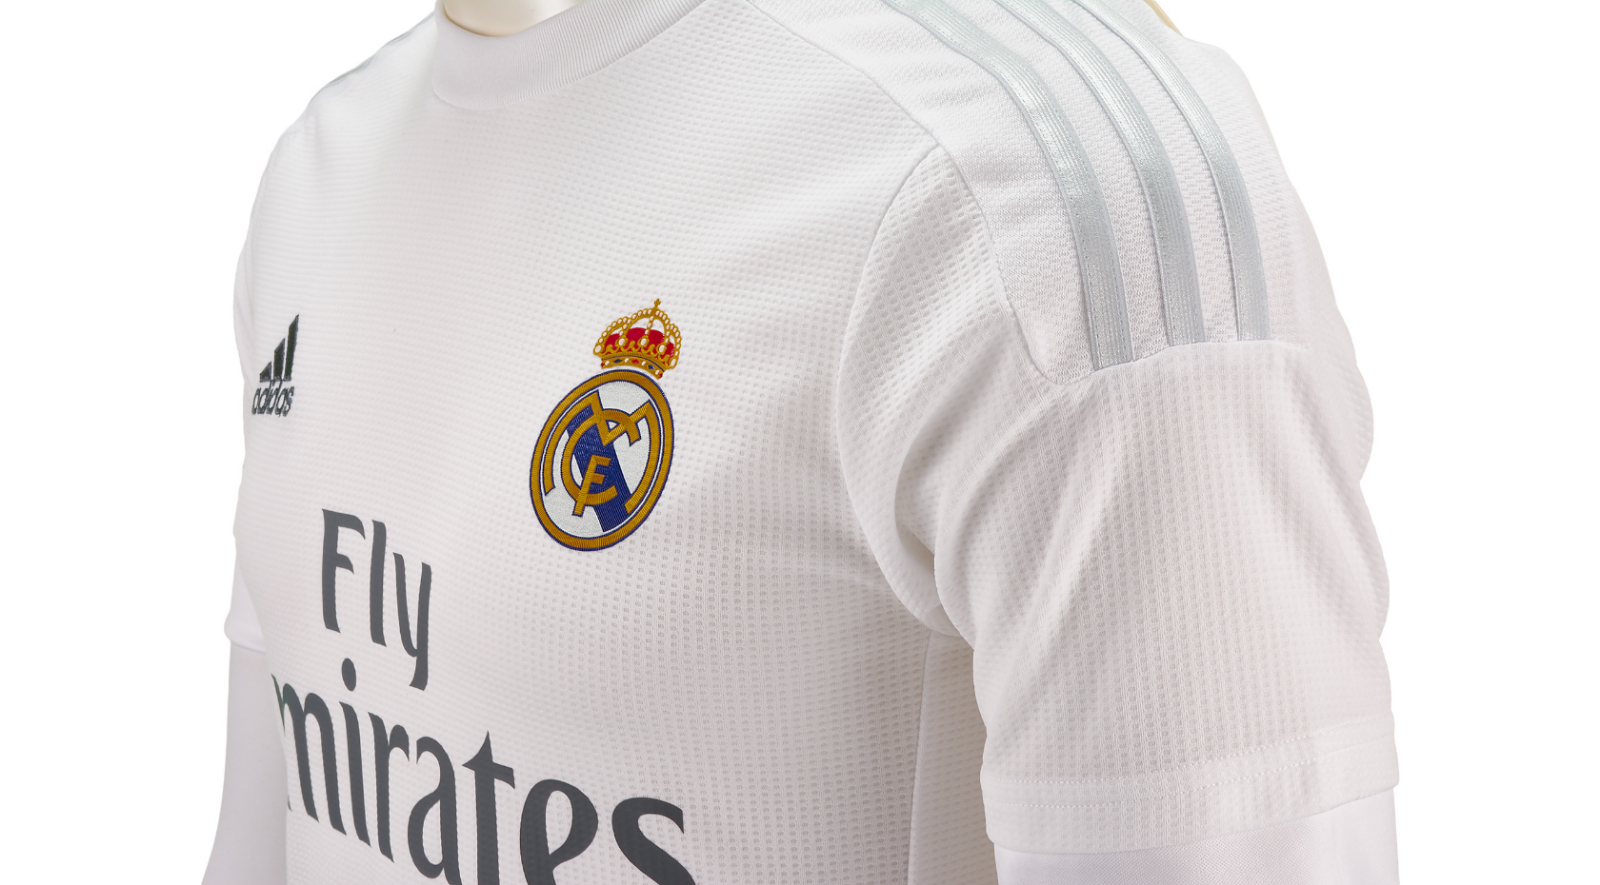 Adidas Real Madrid Official Home Jersey 2016 Retail Model S12652 M For Sale Online Ebay